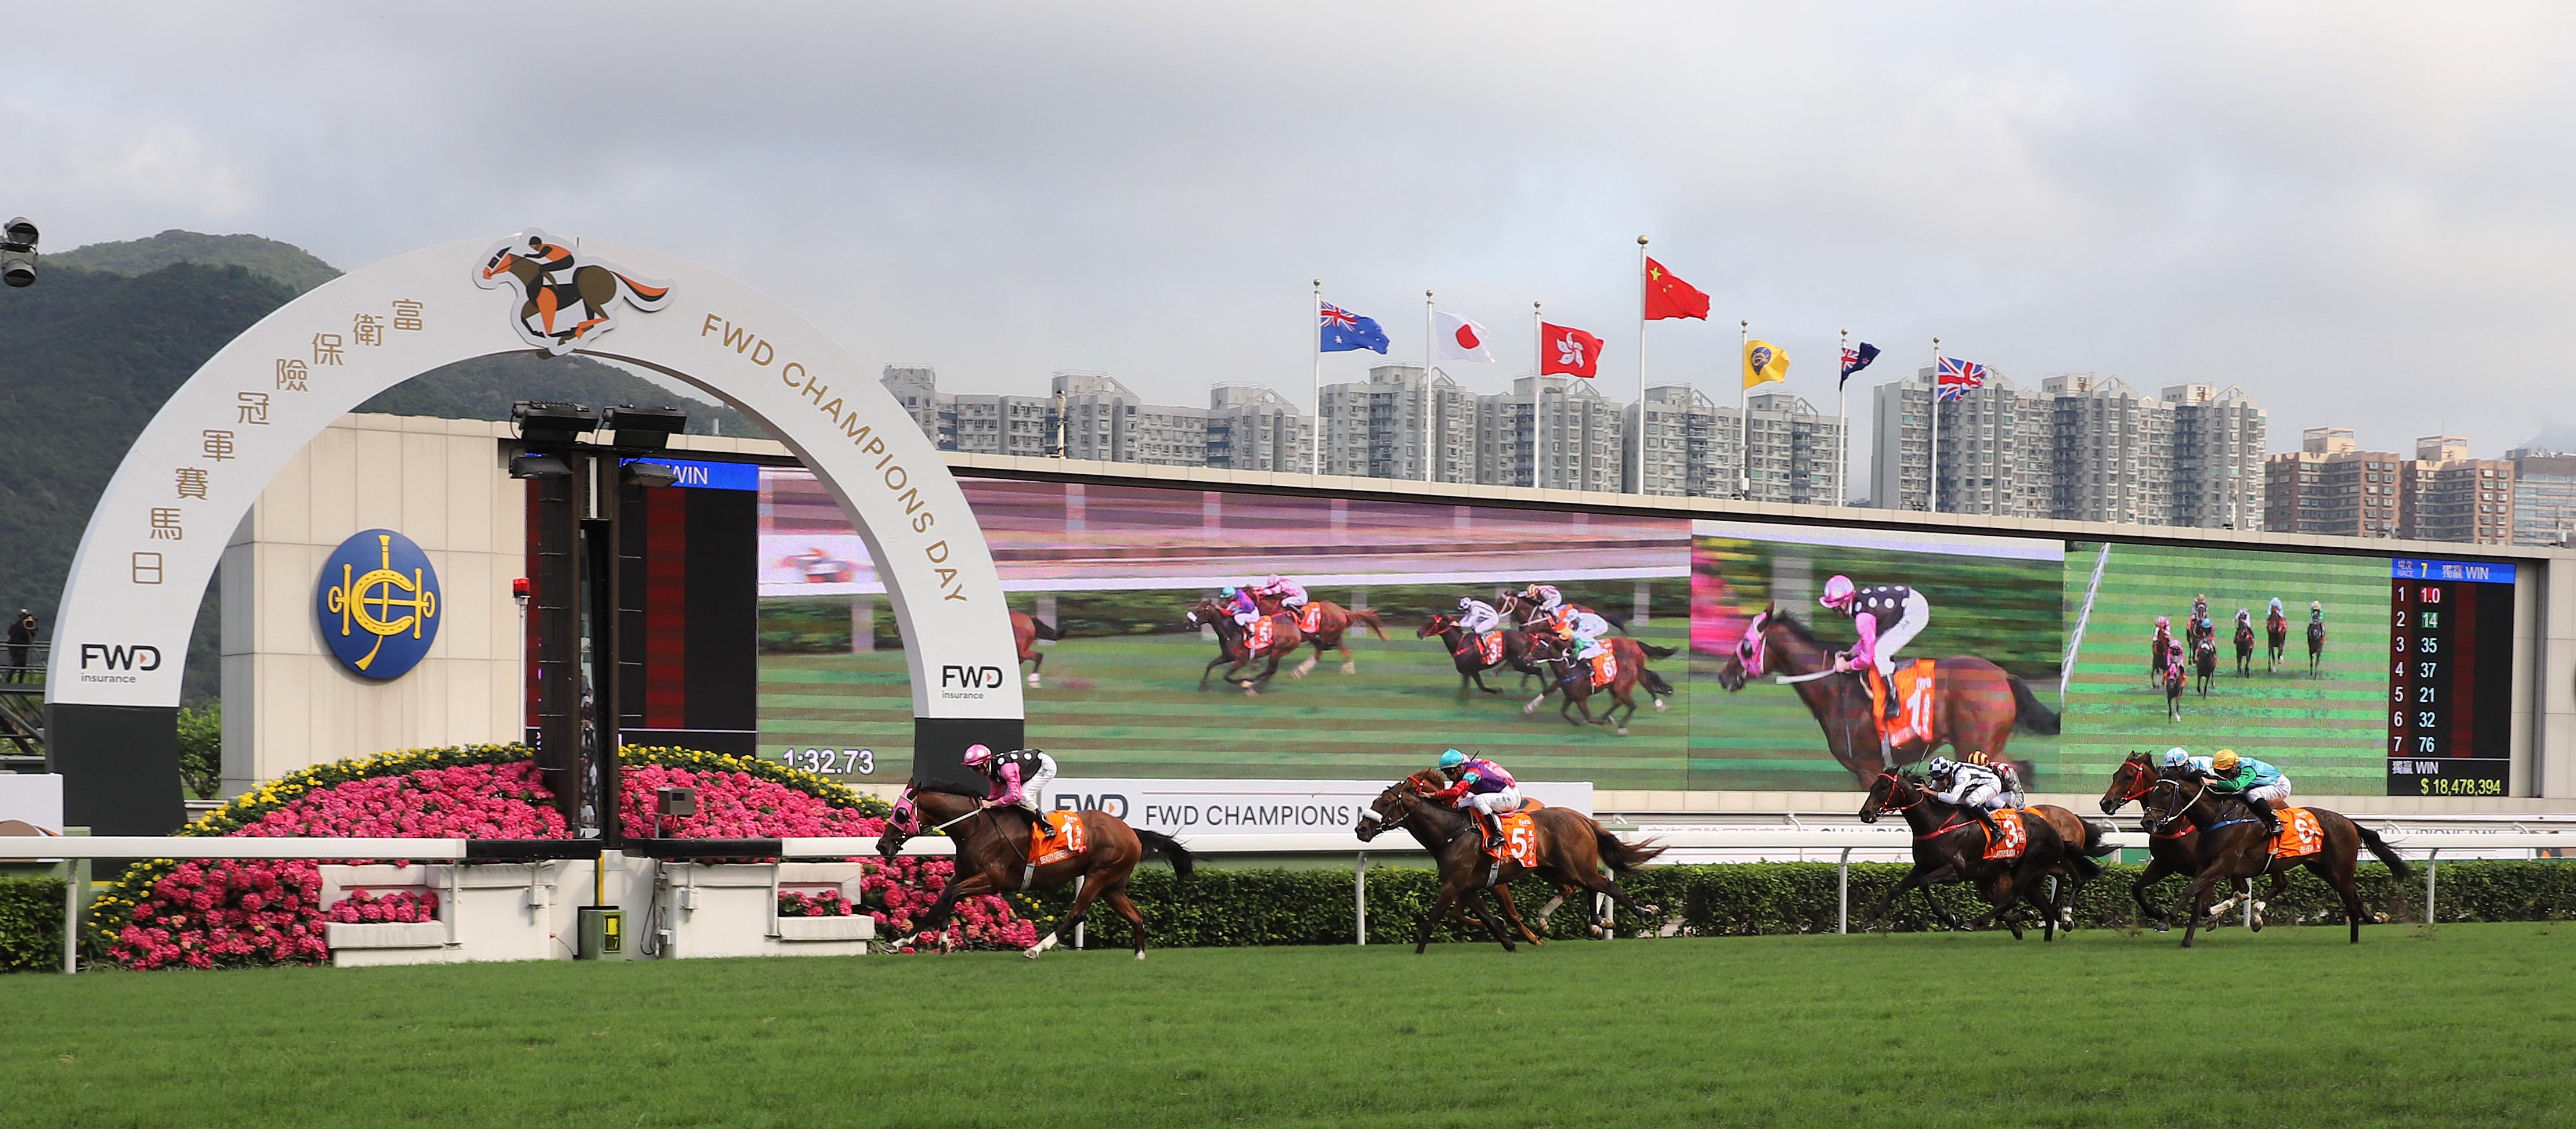 Different class: Beauty Generation (Zac Purton) saunters home clear after putting the rest of the field to the sword in the G1 Champions Mile. Photo: Hong Kong Jockey Club